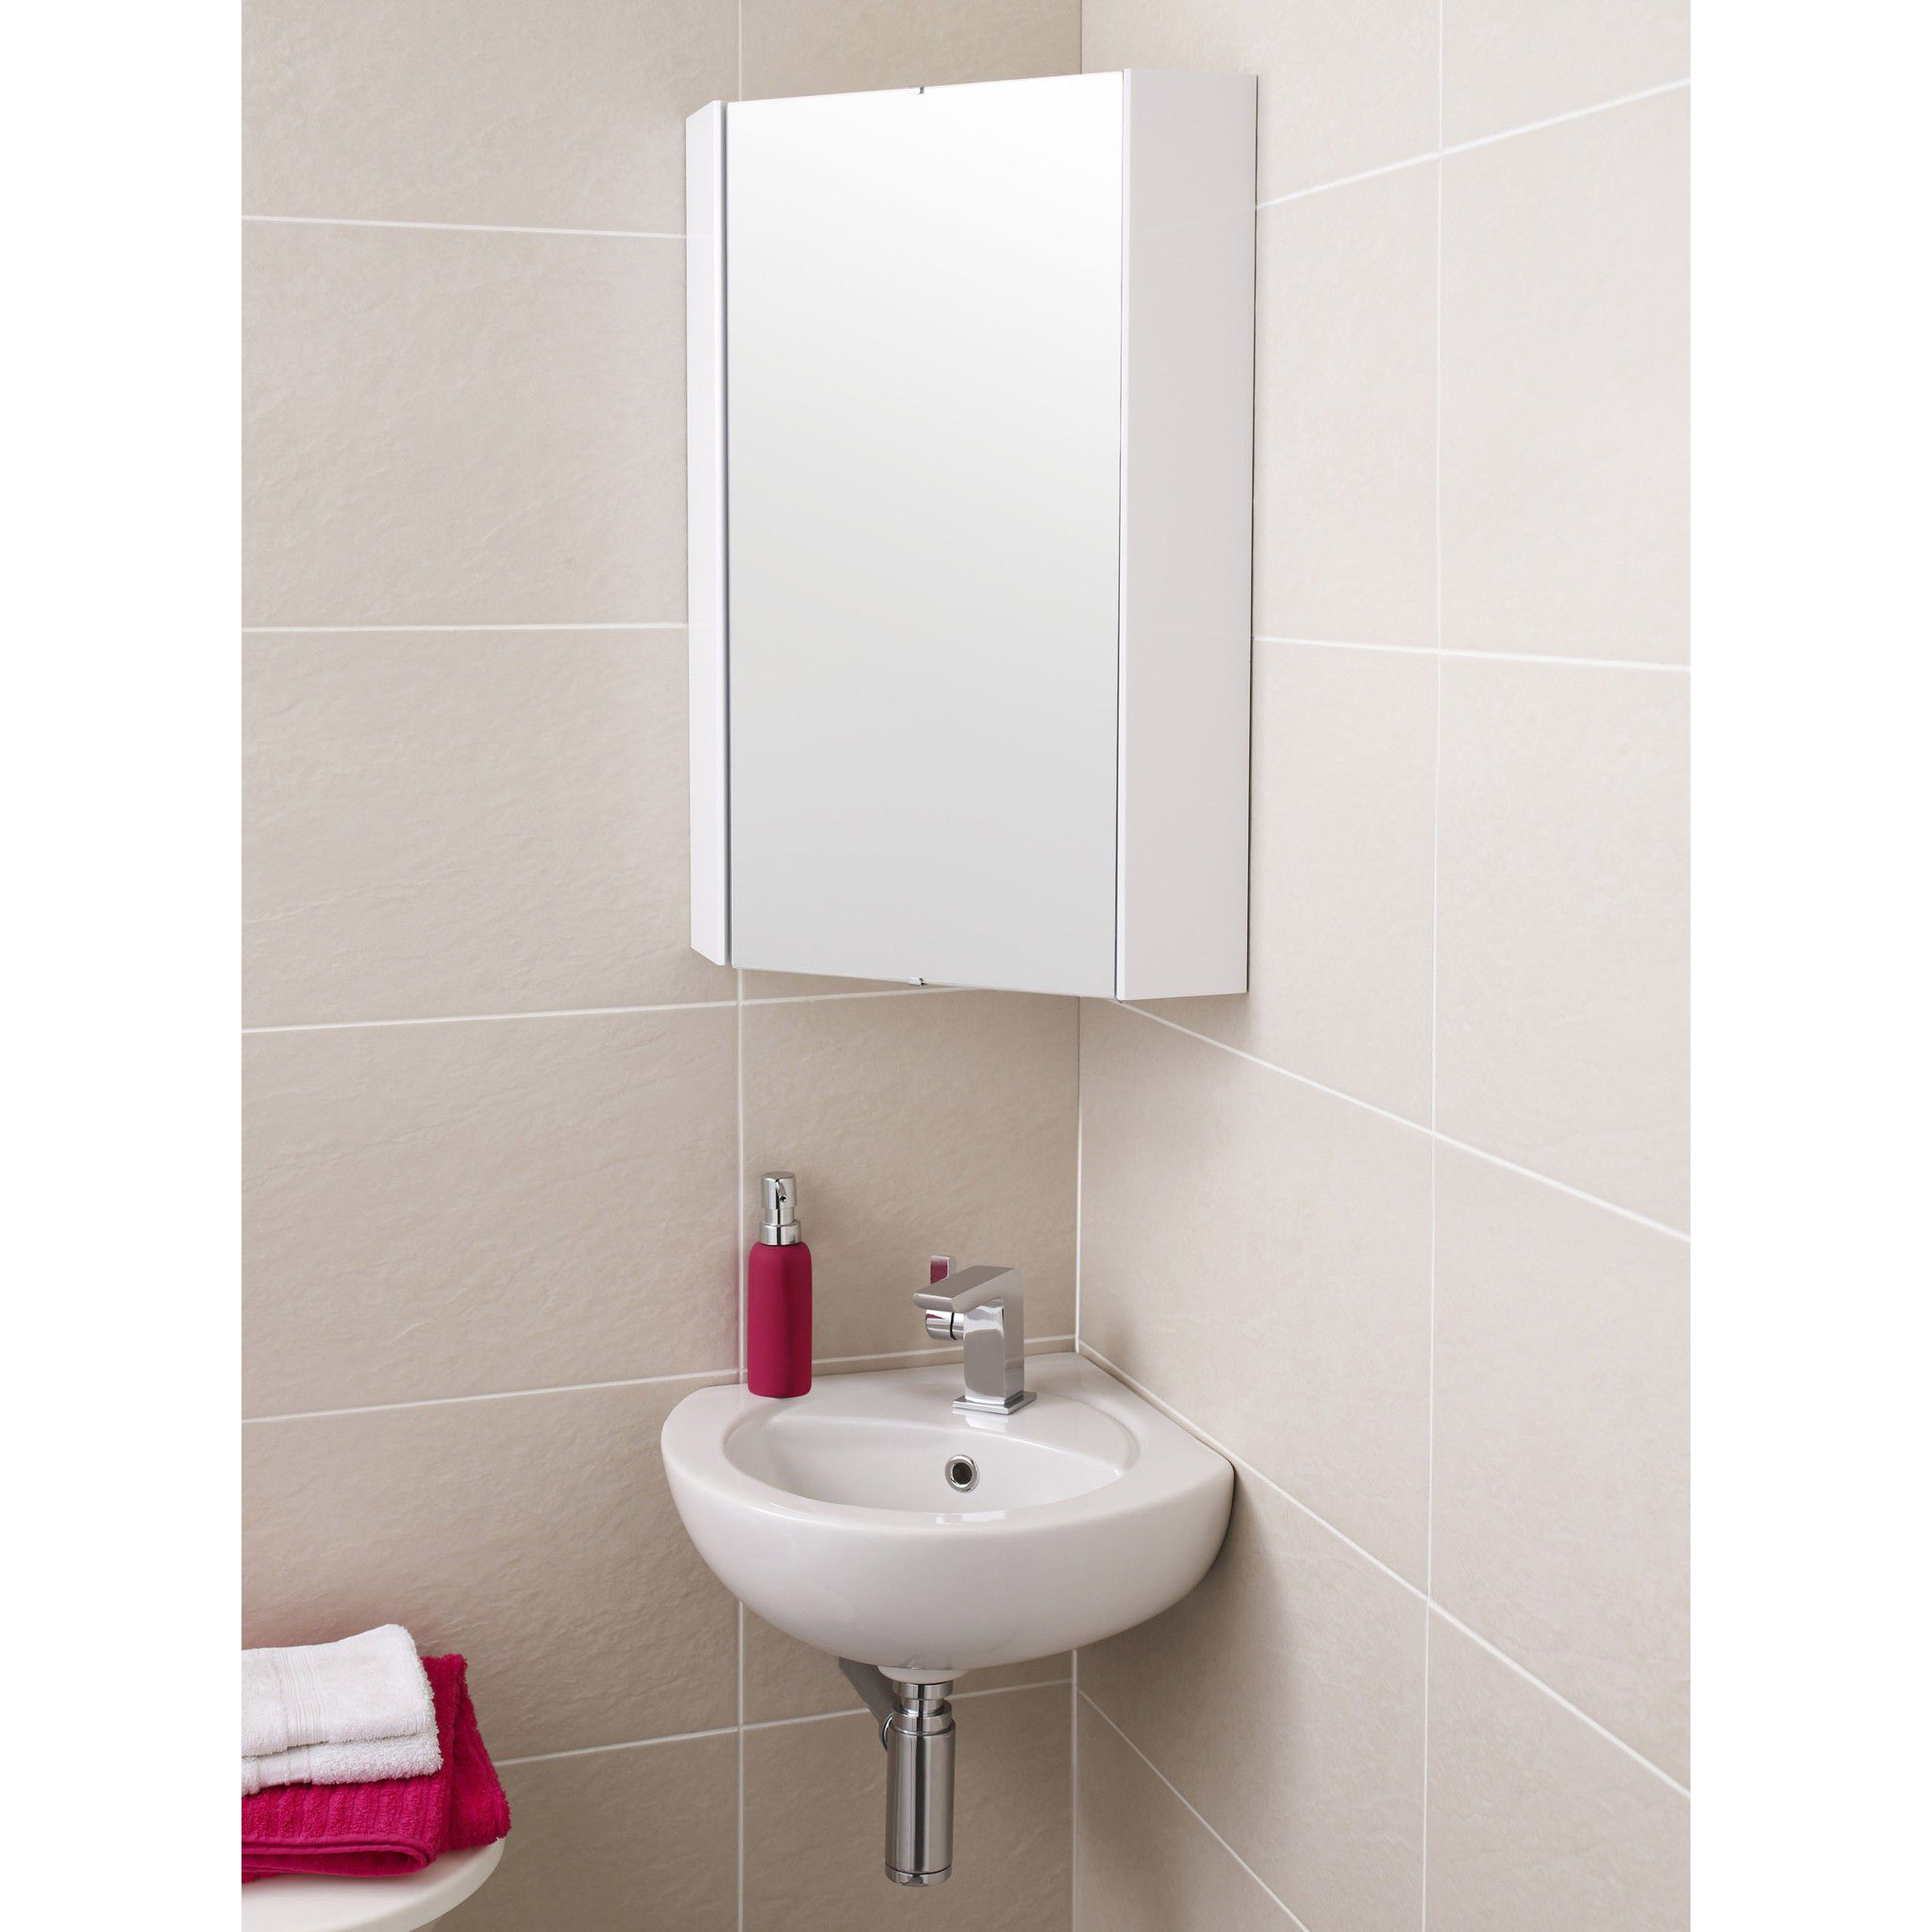 Mirrored bathroom cabinet without lights pedestal sink towel hager ...